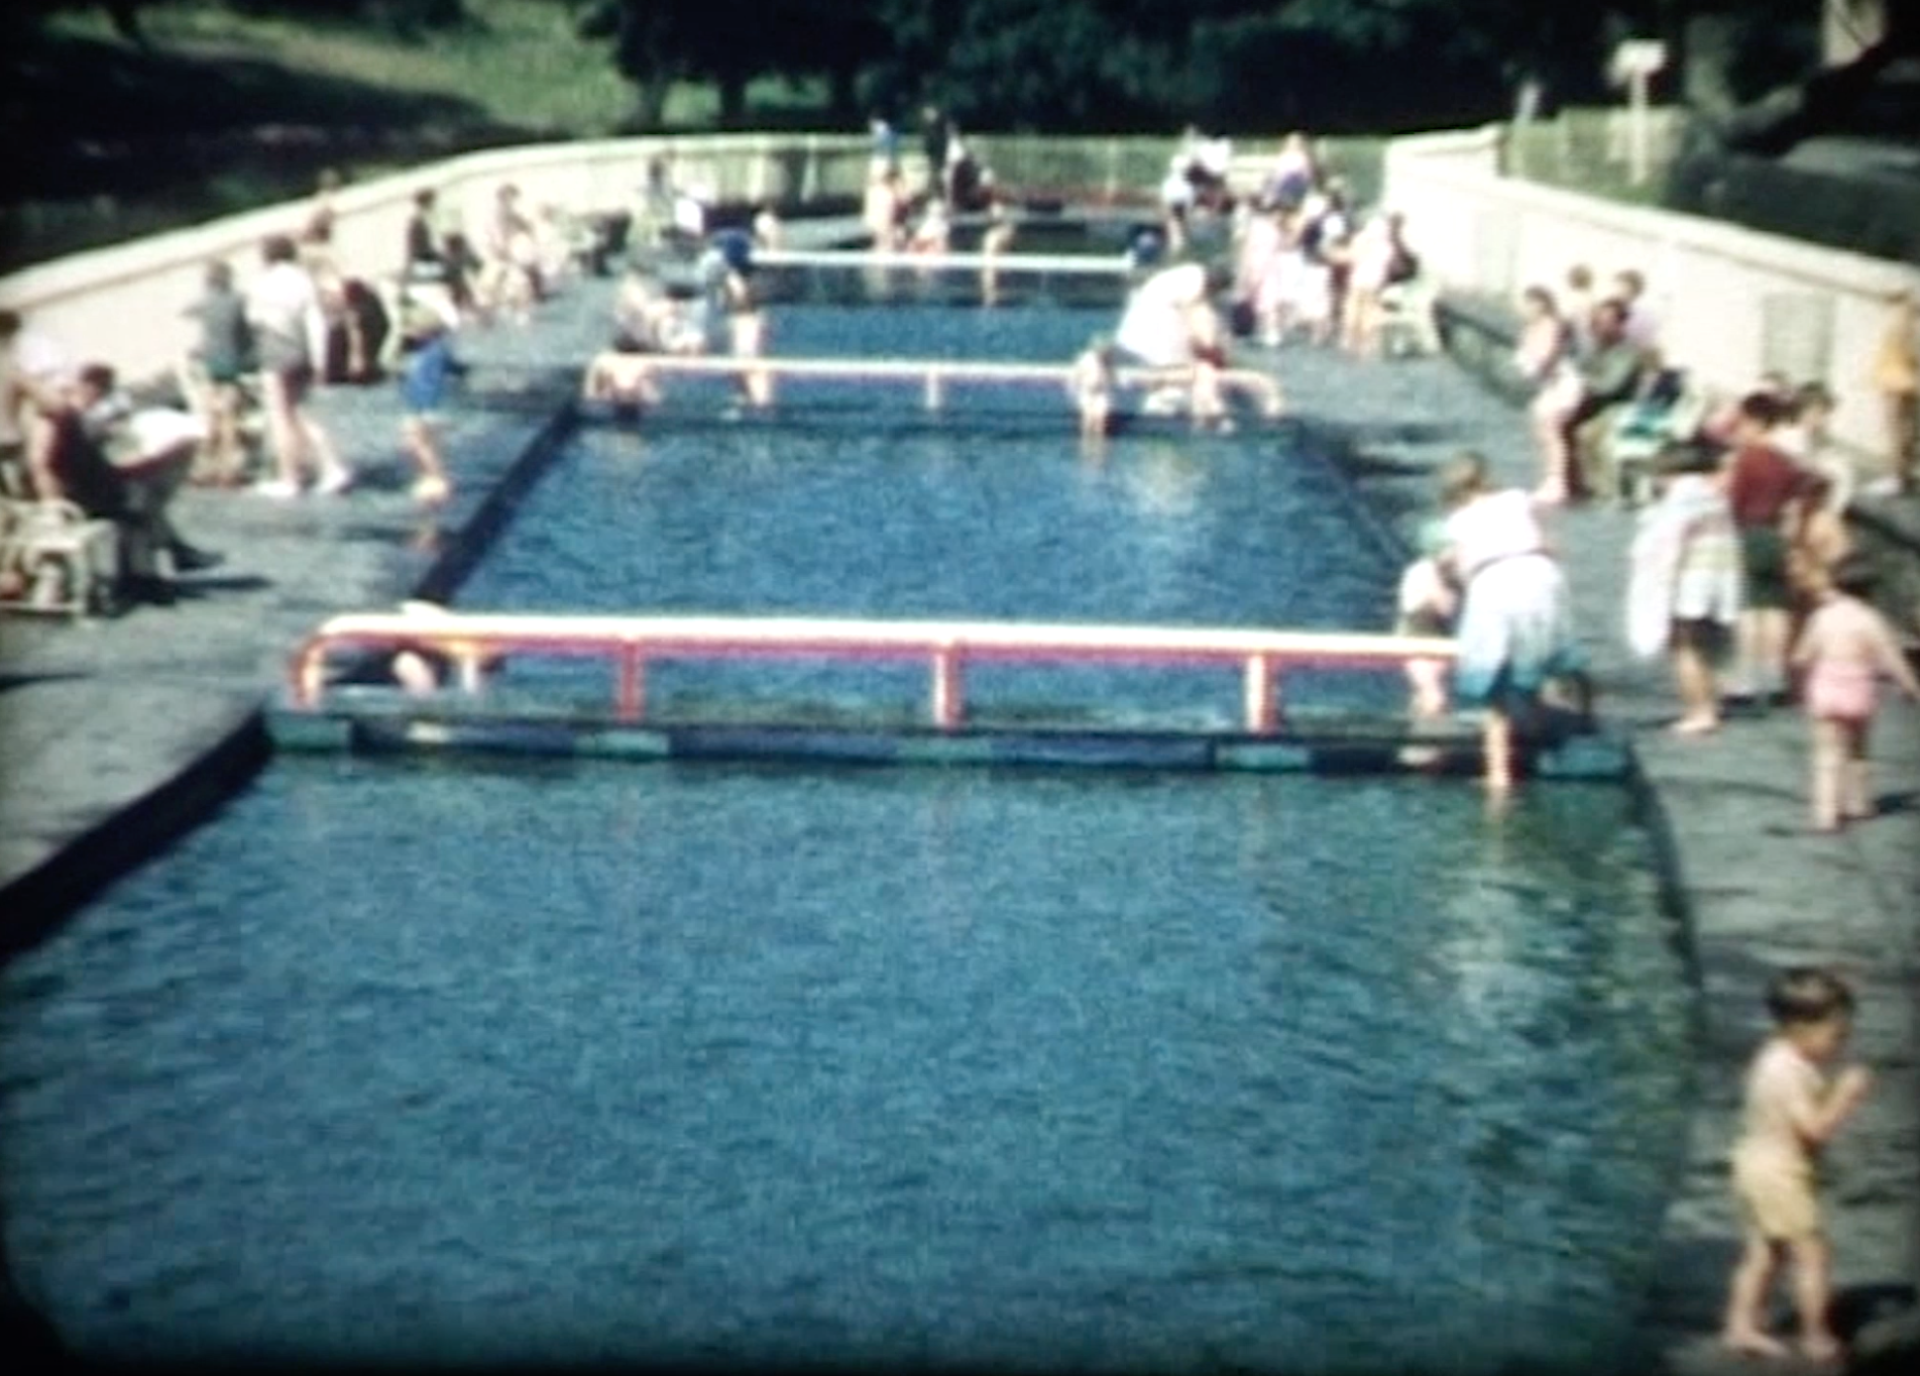 Memory dance rivelin valley lido